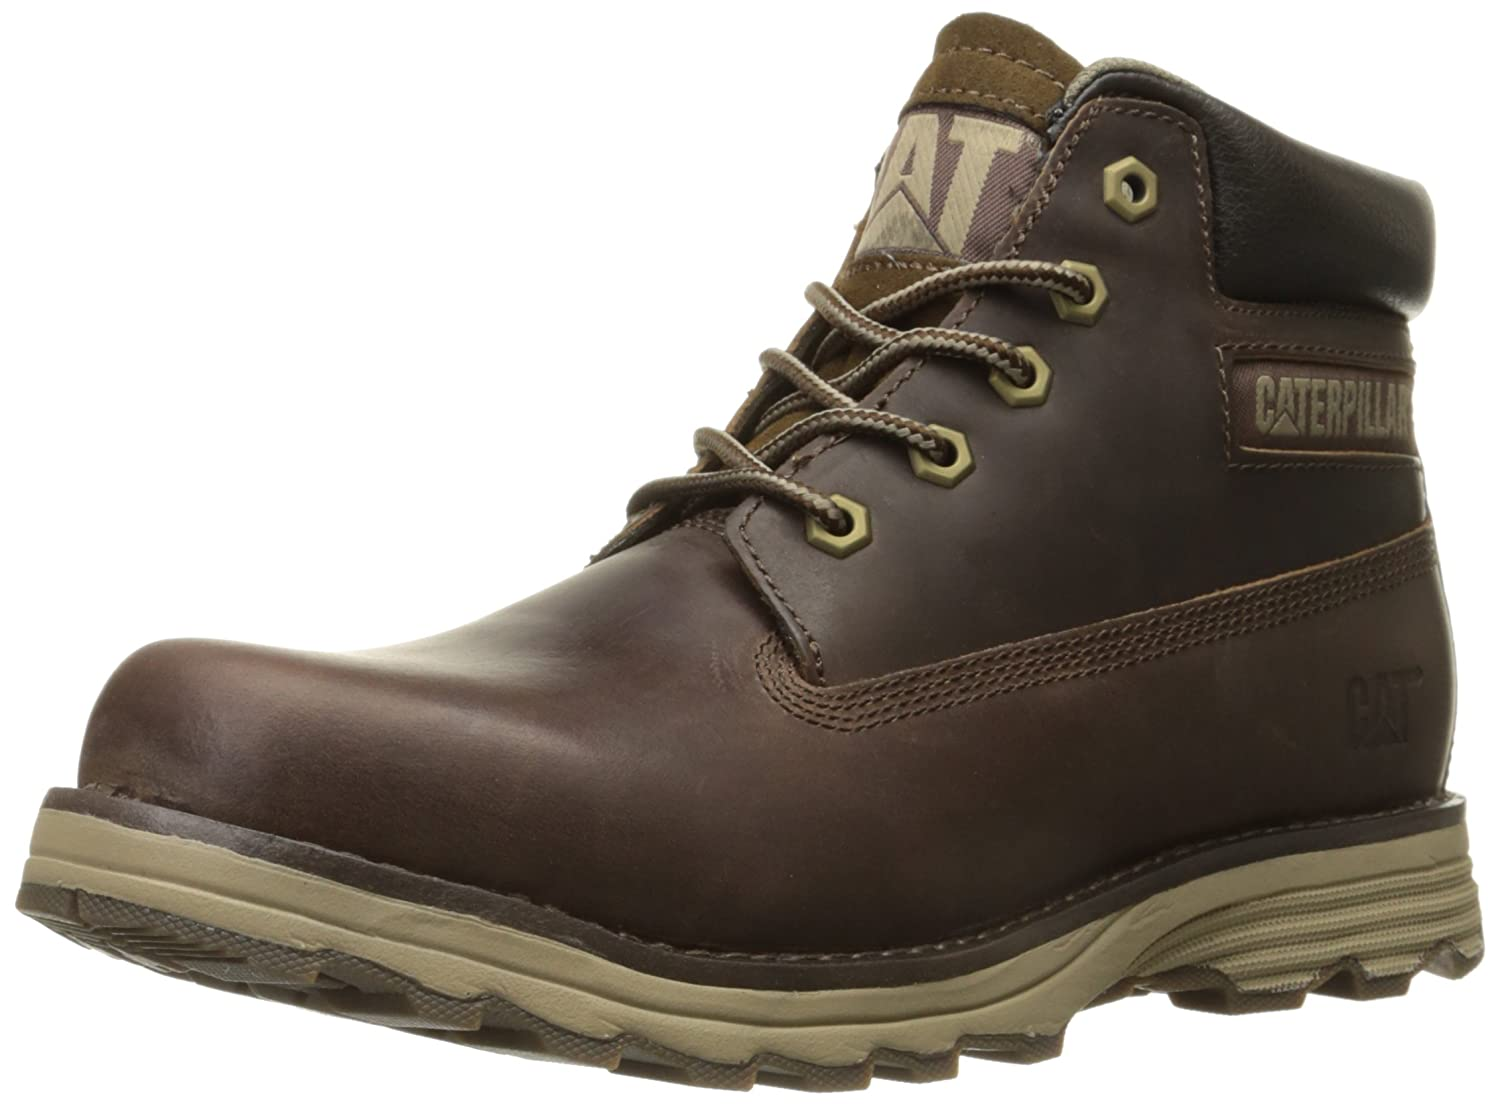 Caterpillar Founder Mens Leather Ankle Boots Brown [並行輸入品] B014QBHUBU 10.5 D(M) US Men|ダークブラウン ダークブラウン 10.5 D(M) US Men